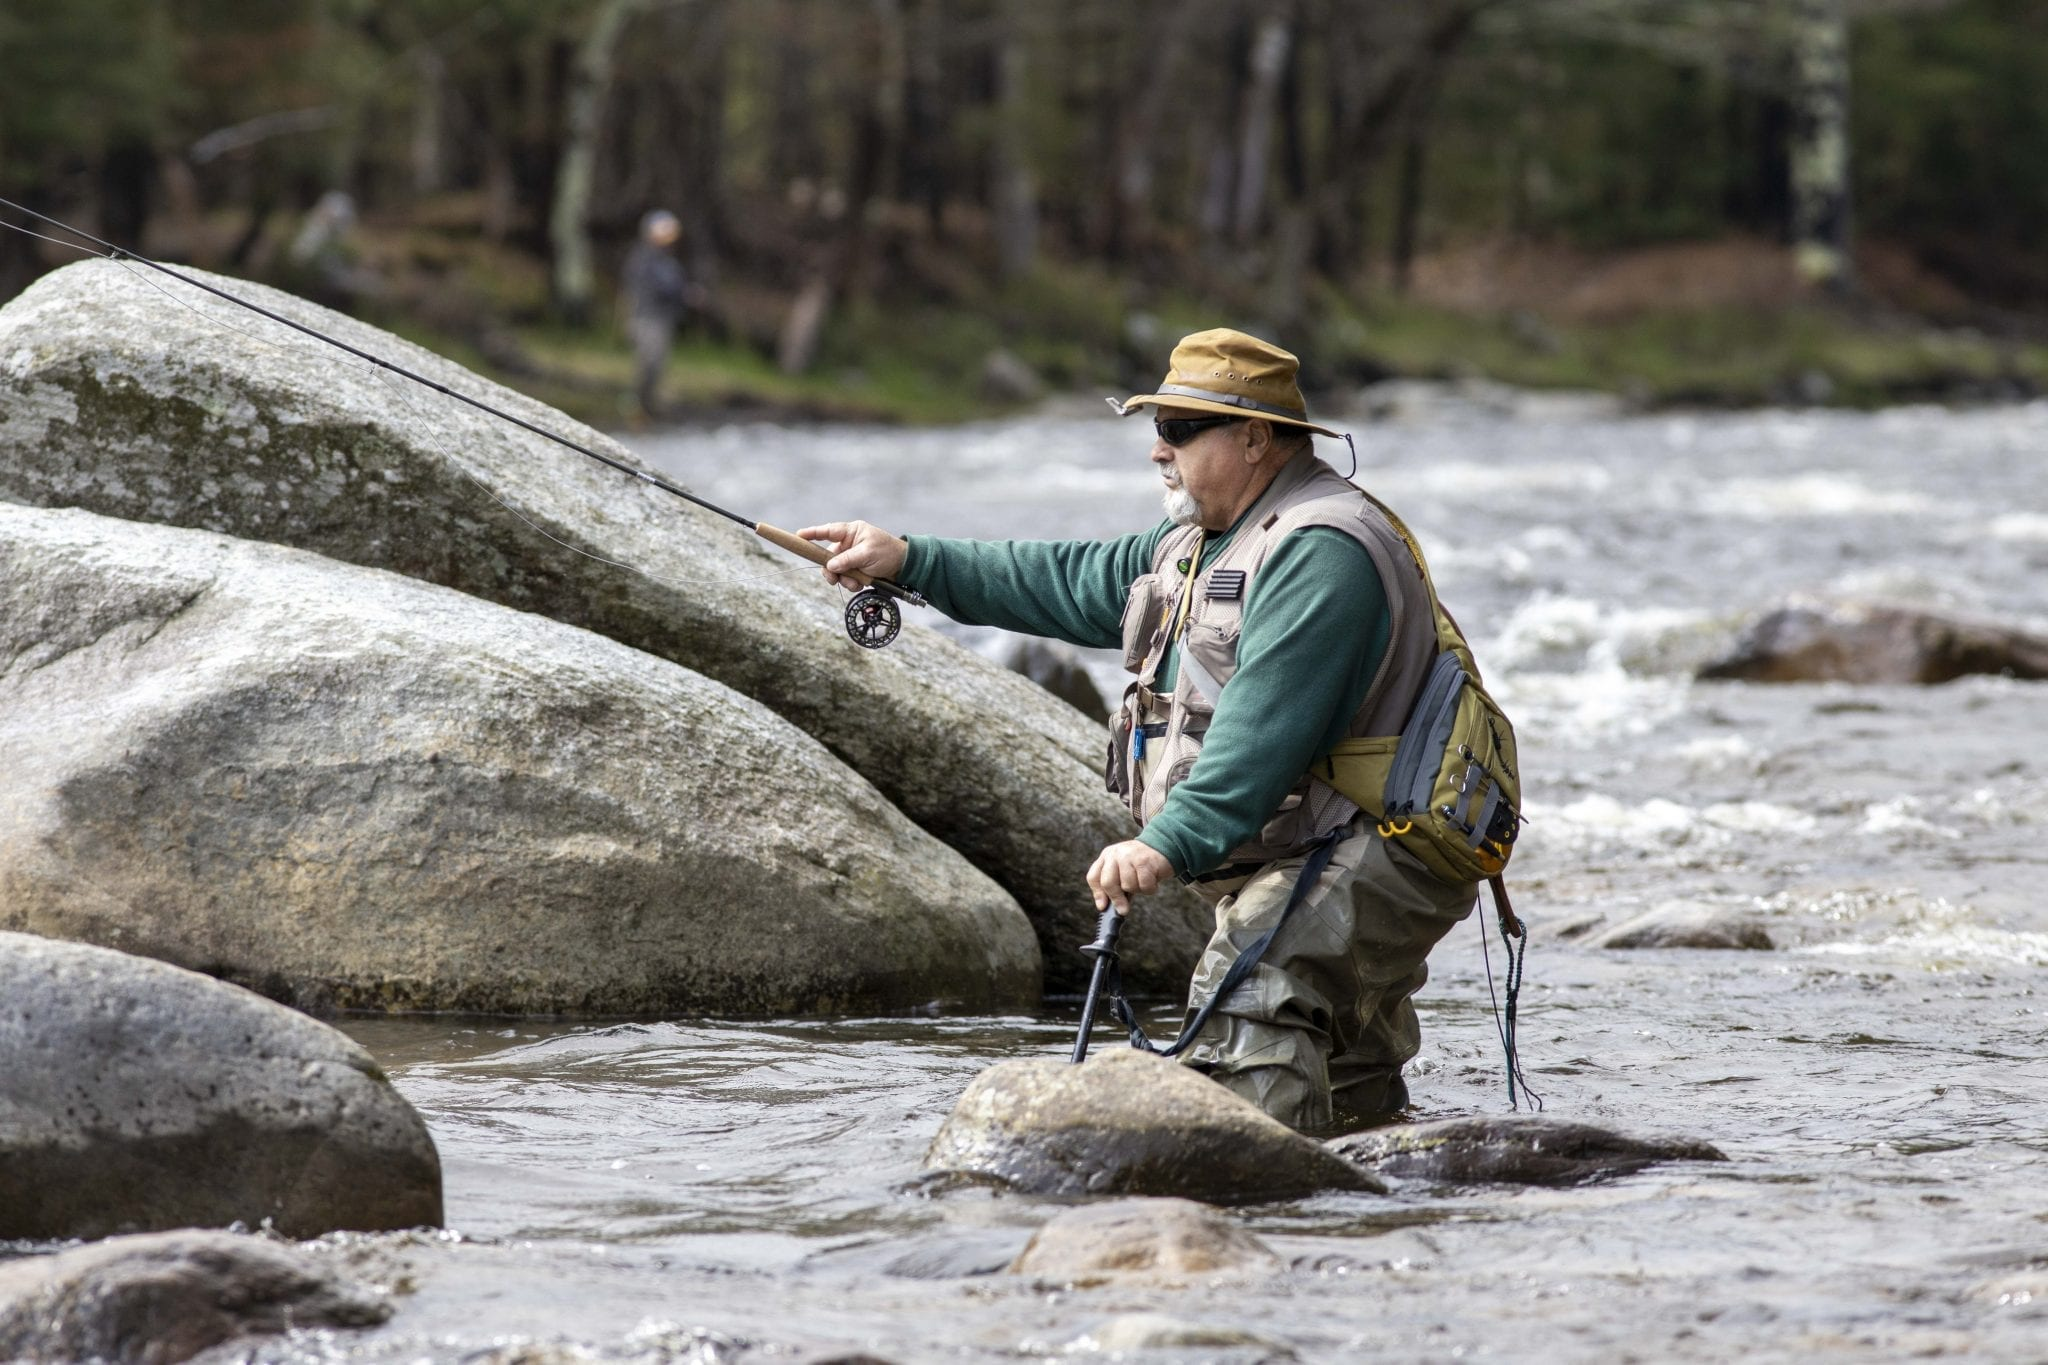 A man fishes in the Two-Fly Challenge on the West Branch of the Ausable River